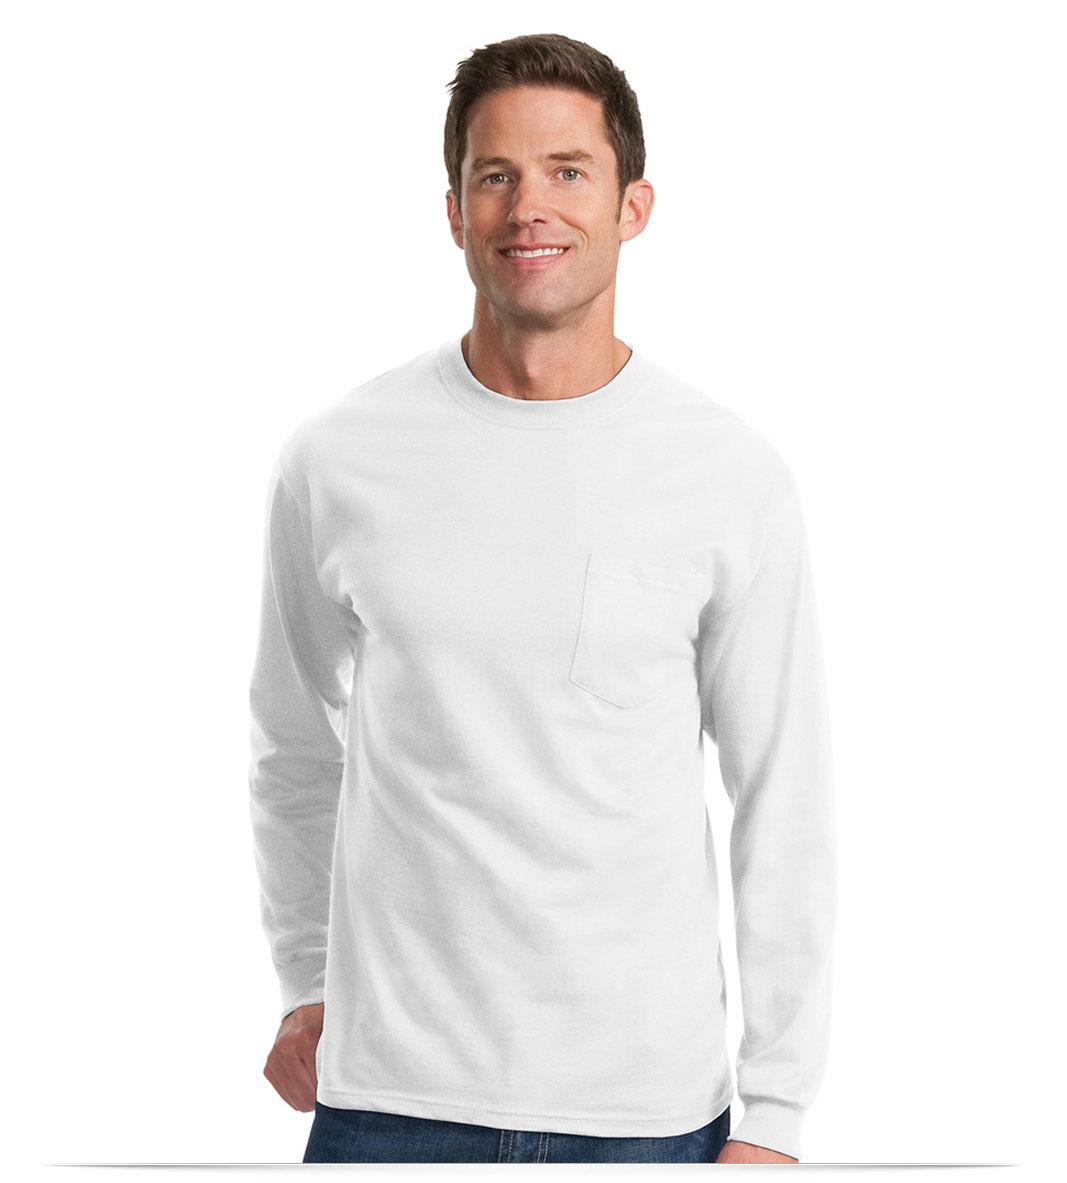 Personalized Logo on 100% Cotton Long Sleeve T-Shirt with Pocket